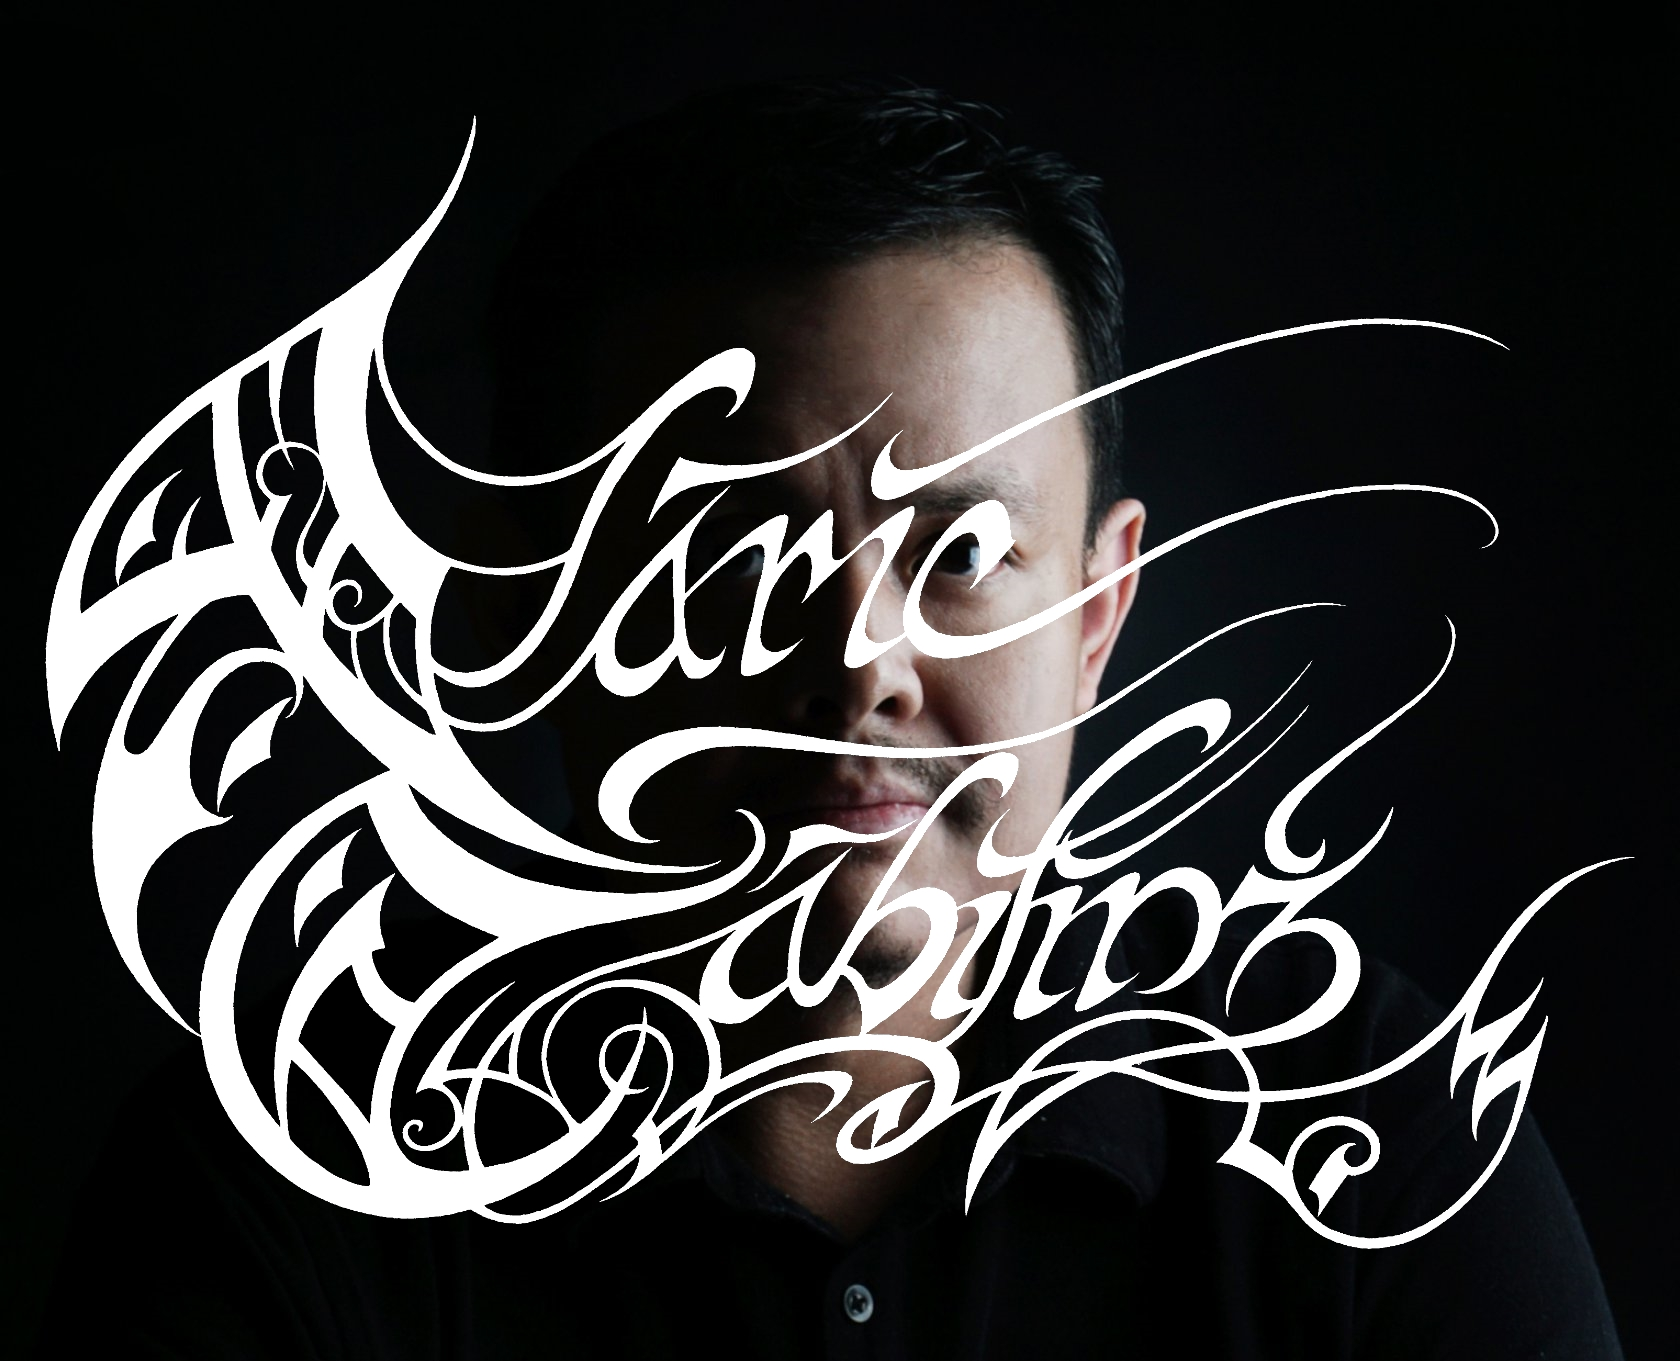 ALARIC CABILING's OFFICIAL SITE